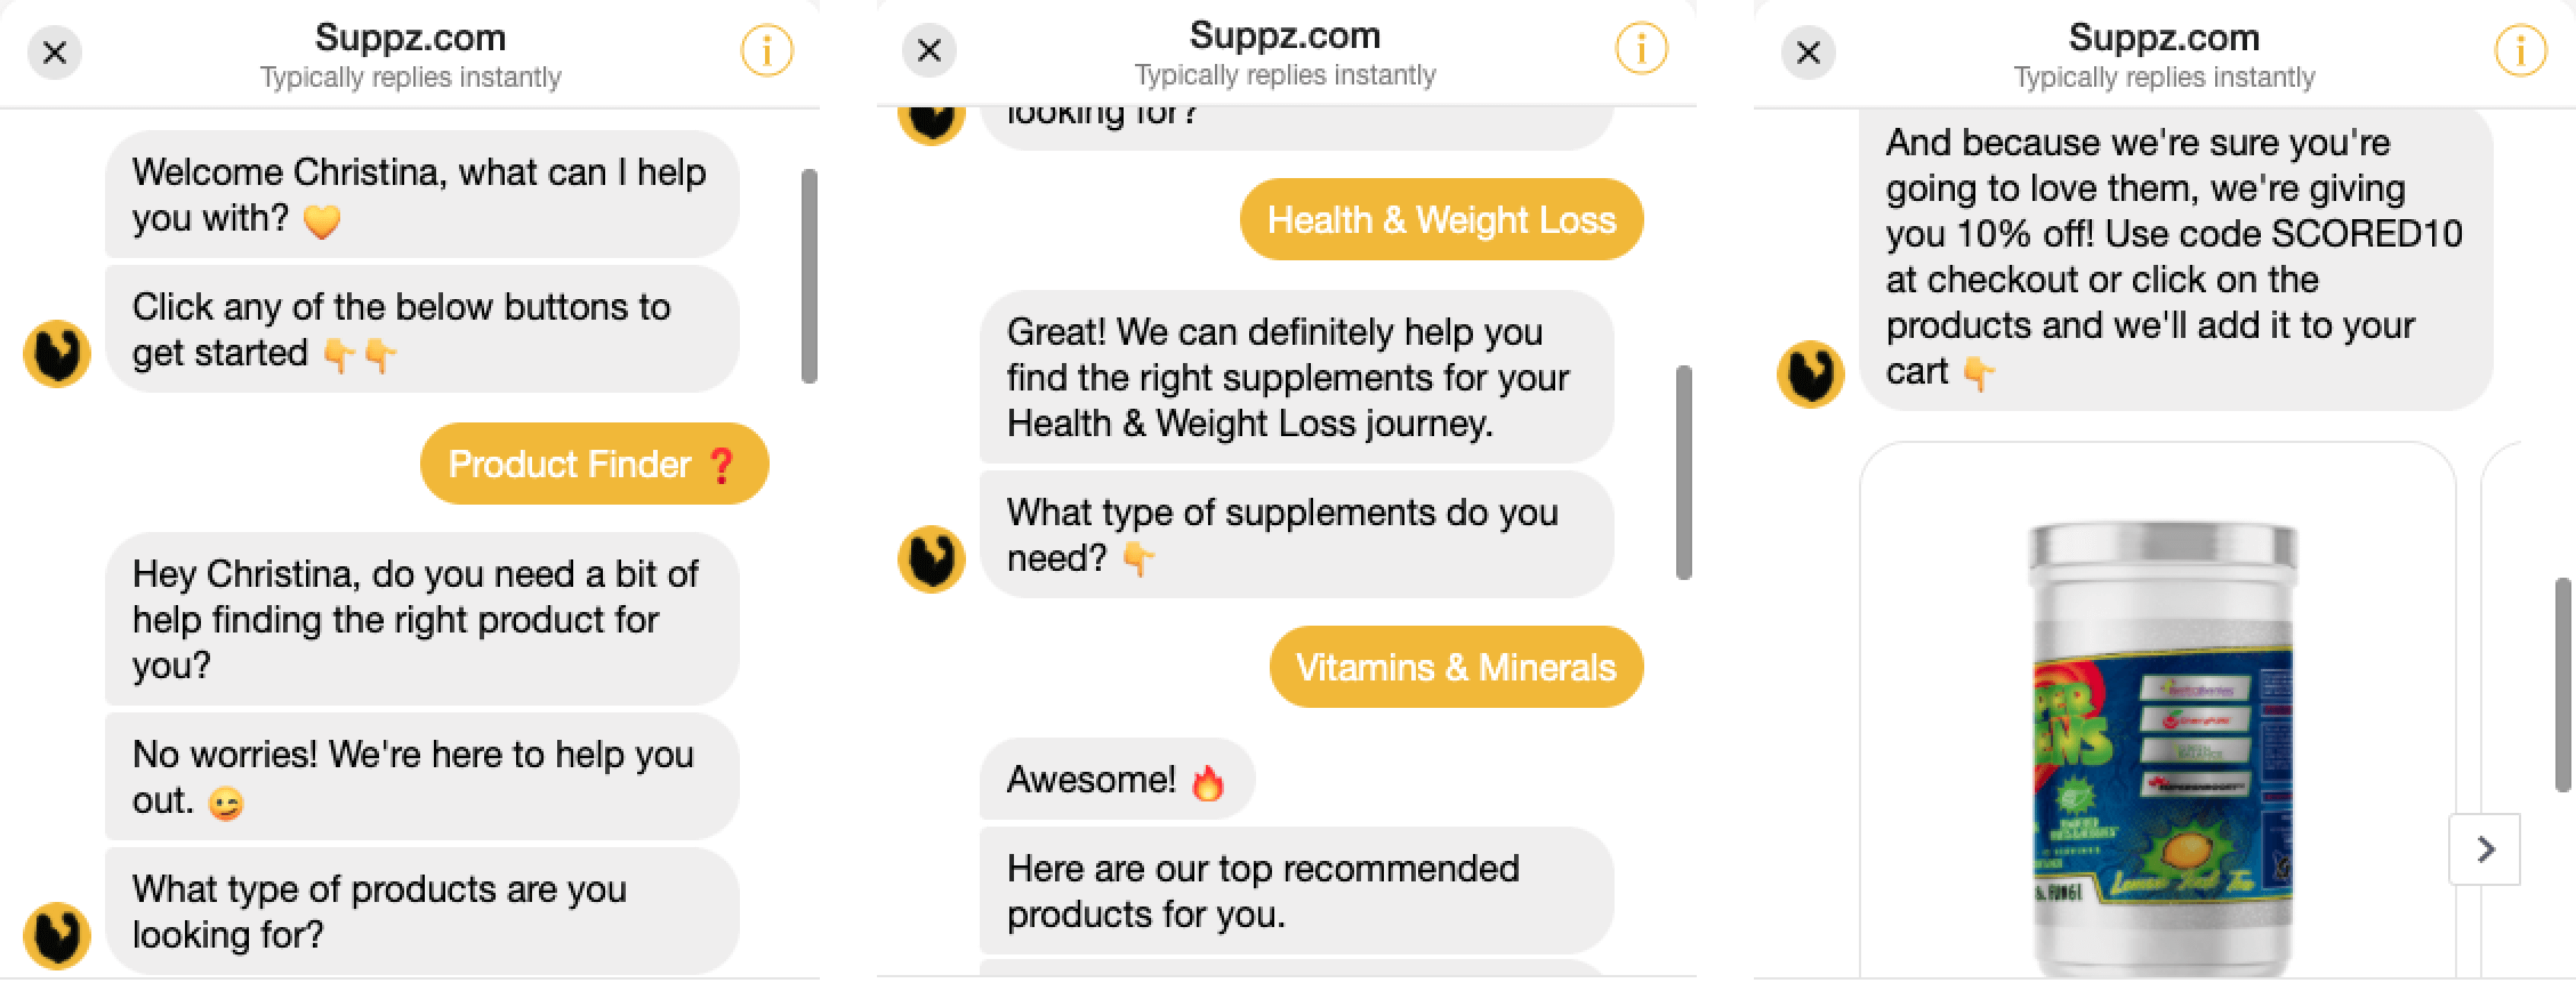 Suppz Messenger Bot